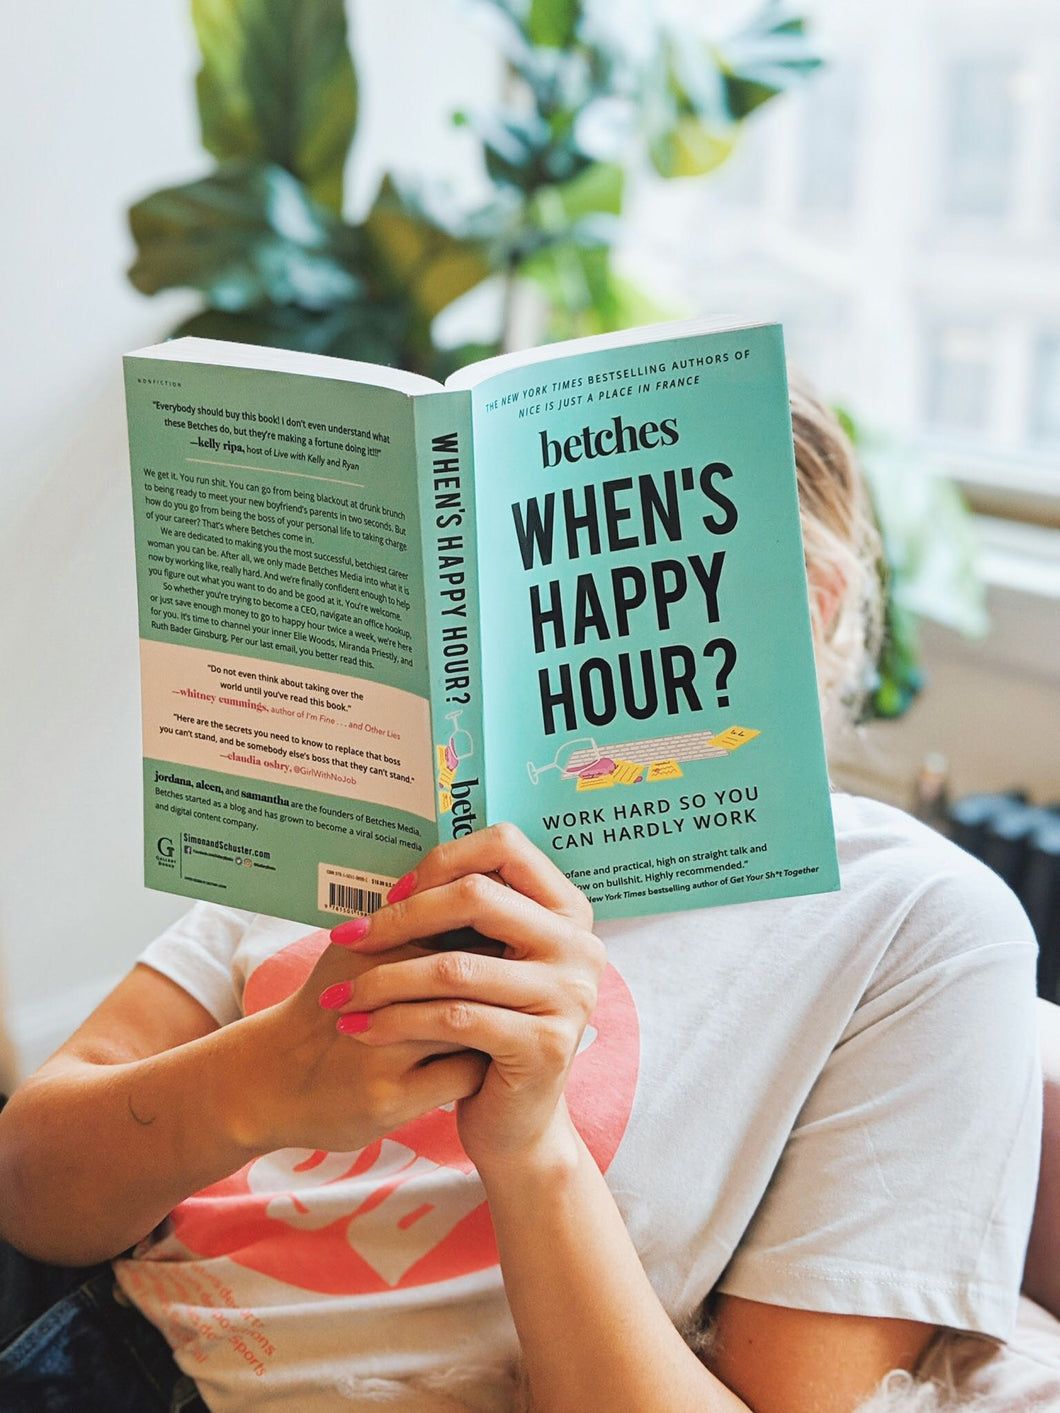 When's Happy Hour?: Work Hard So You Can Hardly Work Paperback